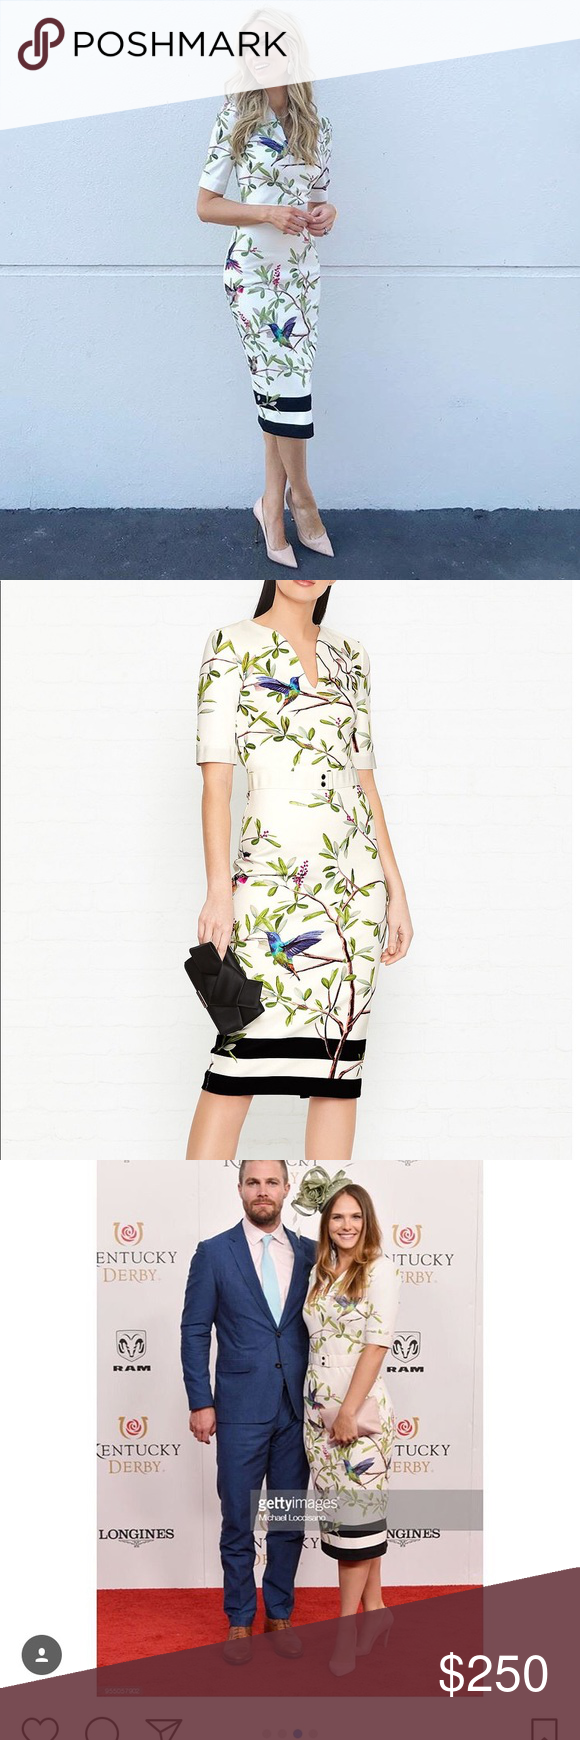 eed412380242 Ted Baker Evrely Highgrove Pencil Dress You re sure to cut a striking  silhouette with